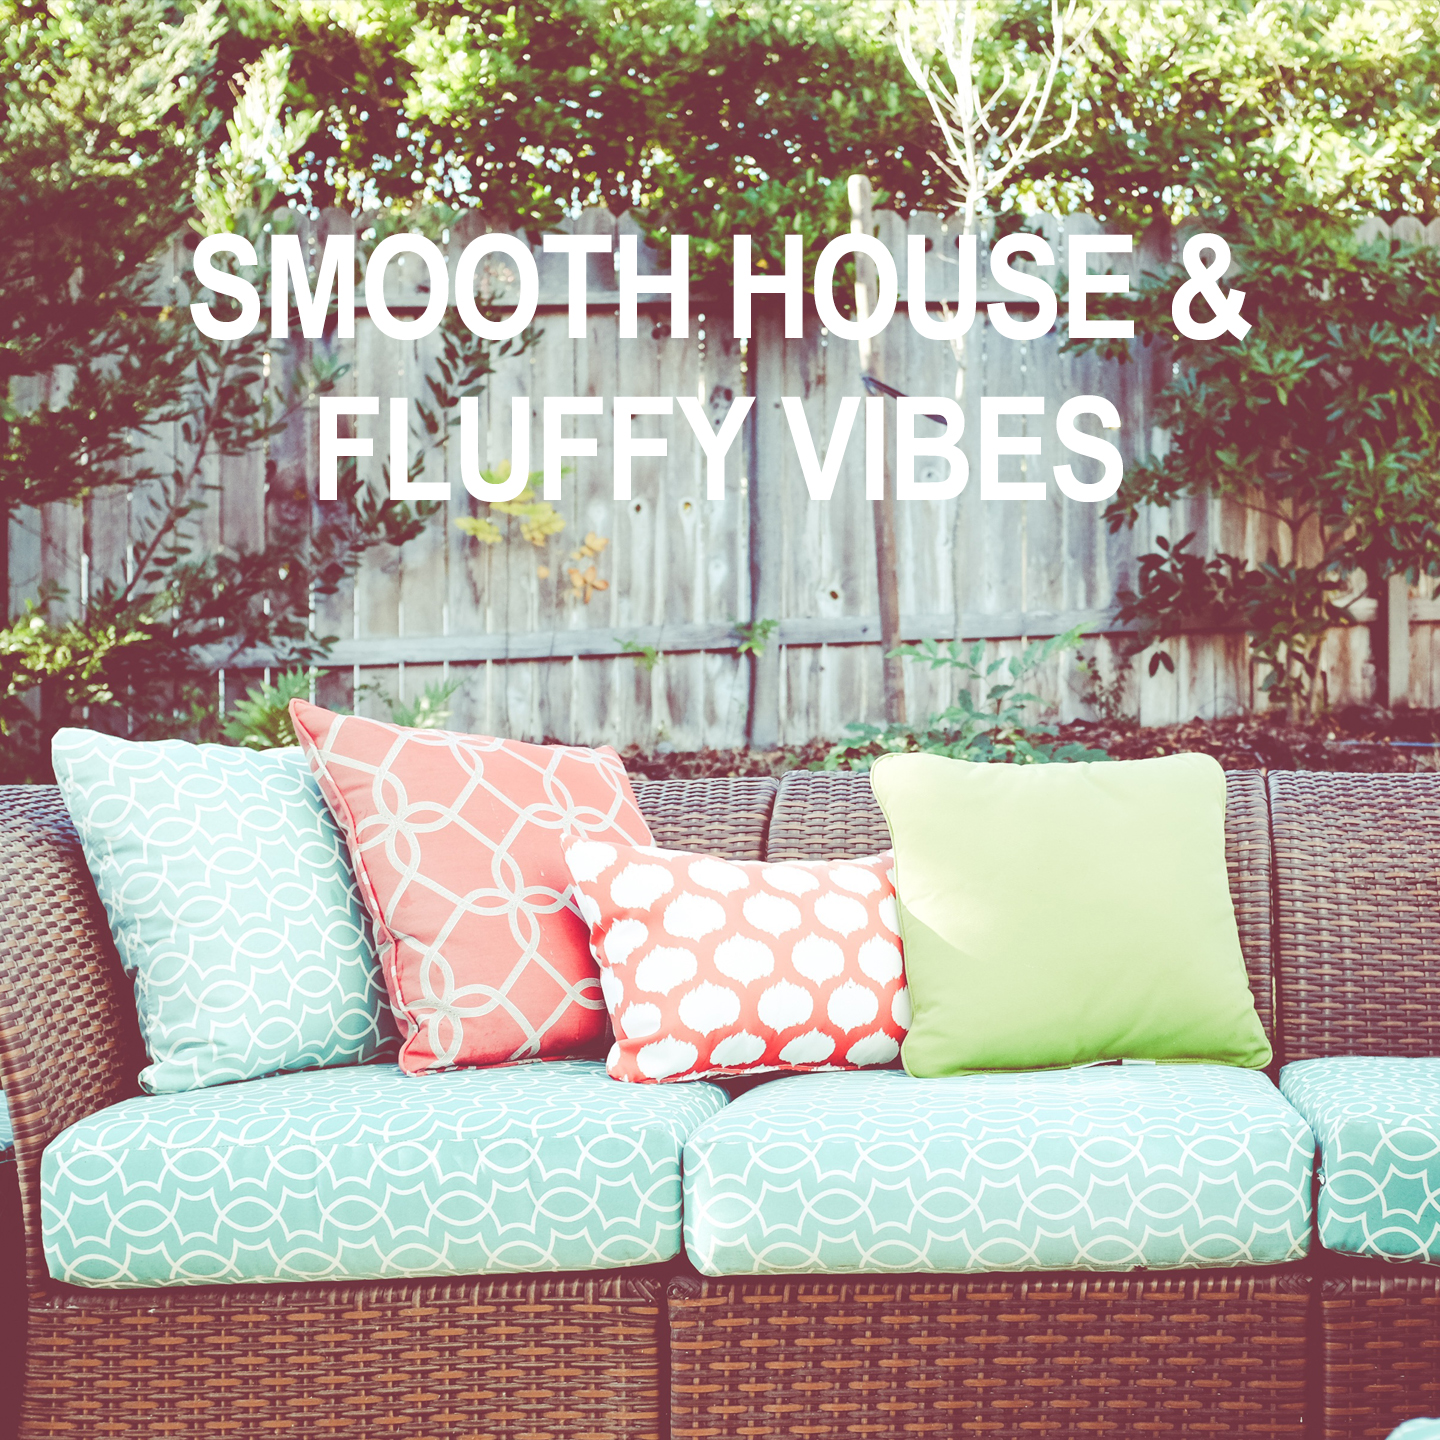 https://www.ultimate-house-records.com/wp-content/uploads/2020/09/playlist_smooth_house_fluffy_vibes.jpg